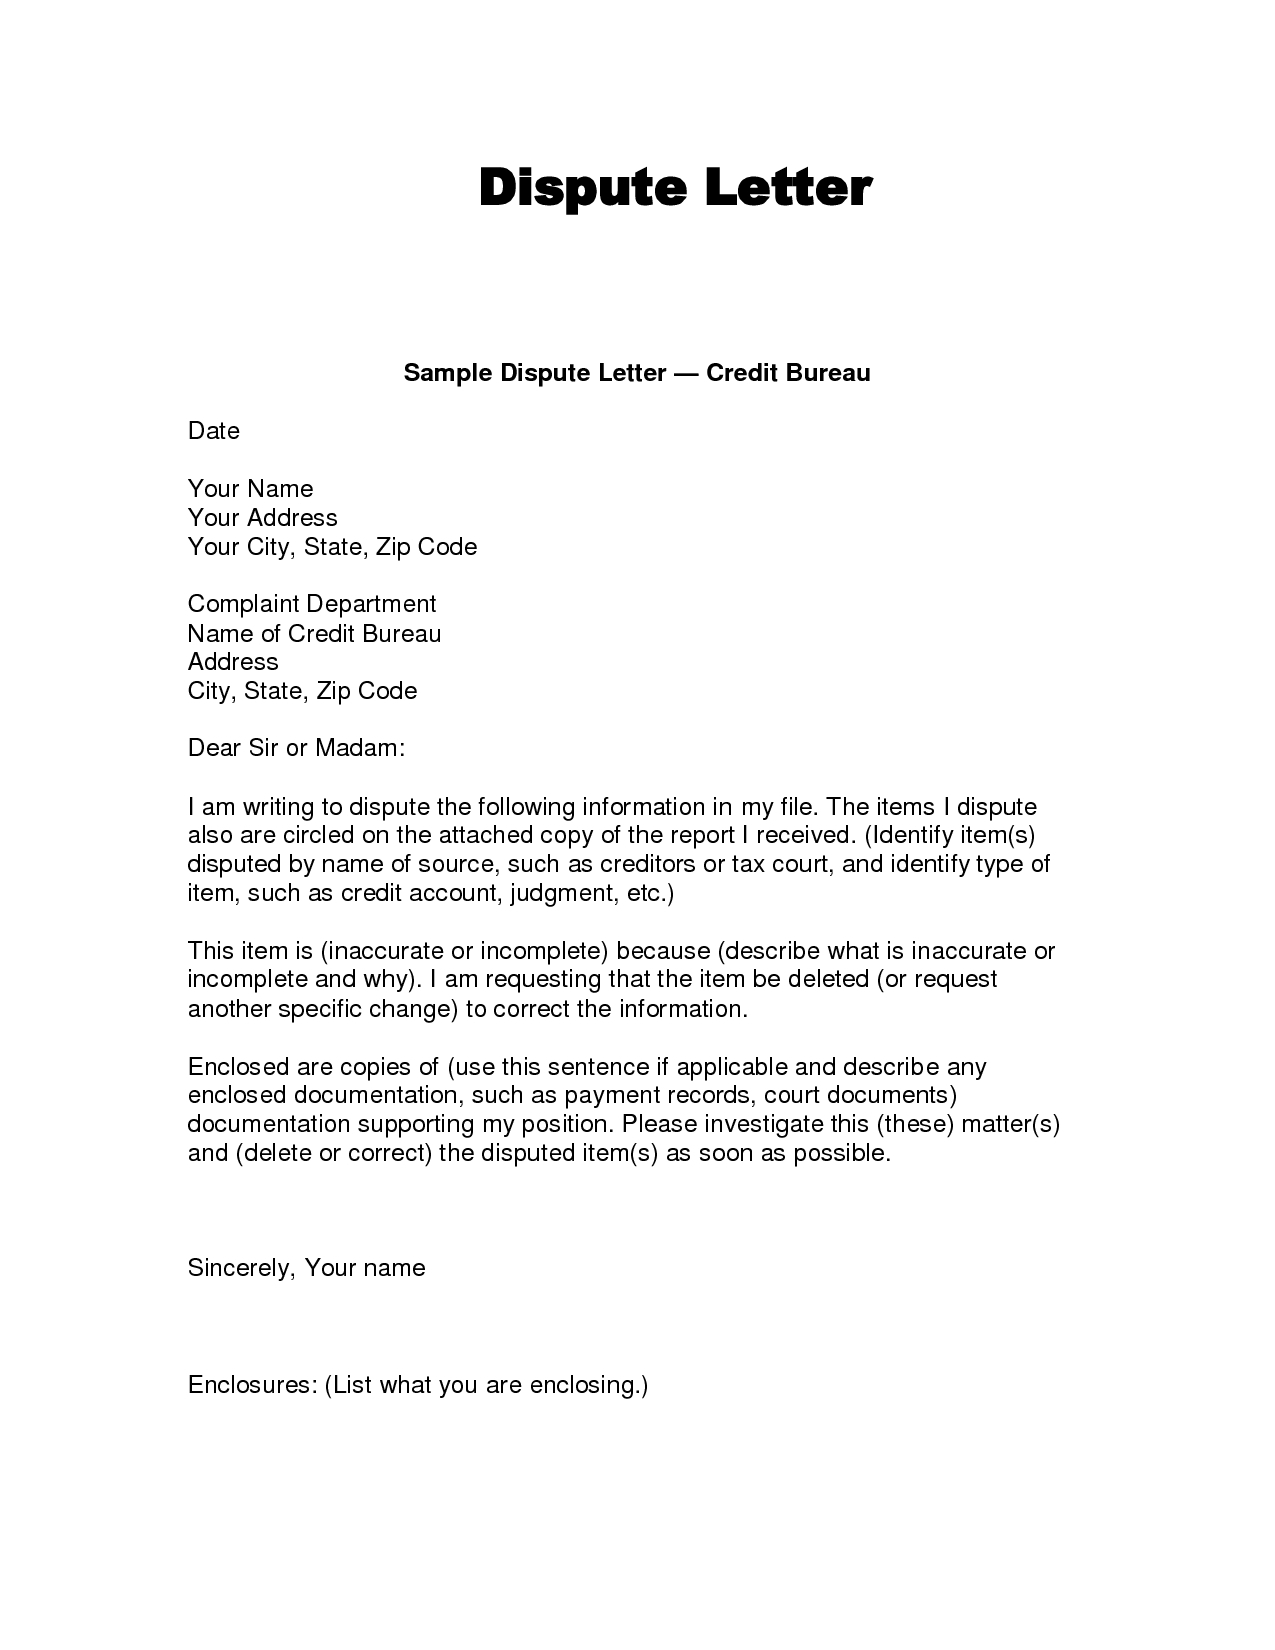 Credit Report Dispute Letter Template - Credit Dispute Letter Templates Acurnamedia